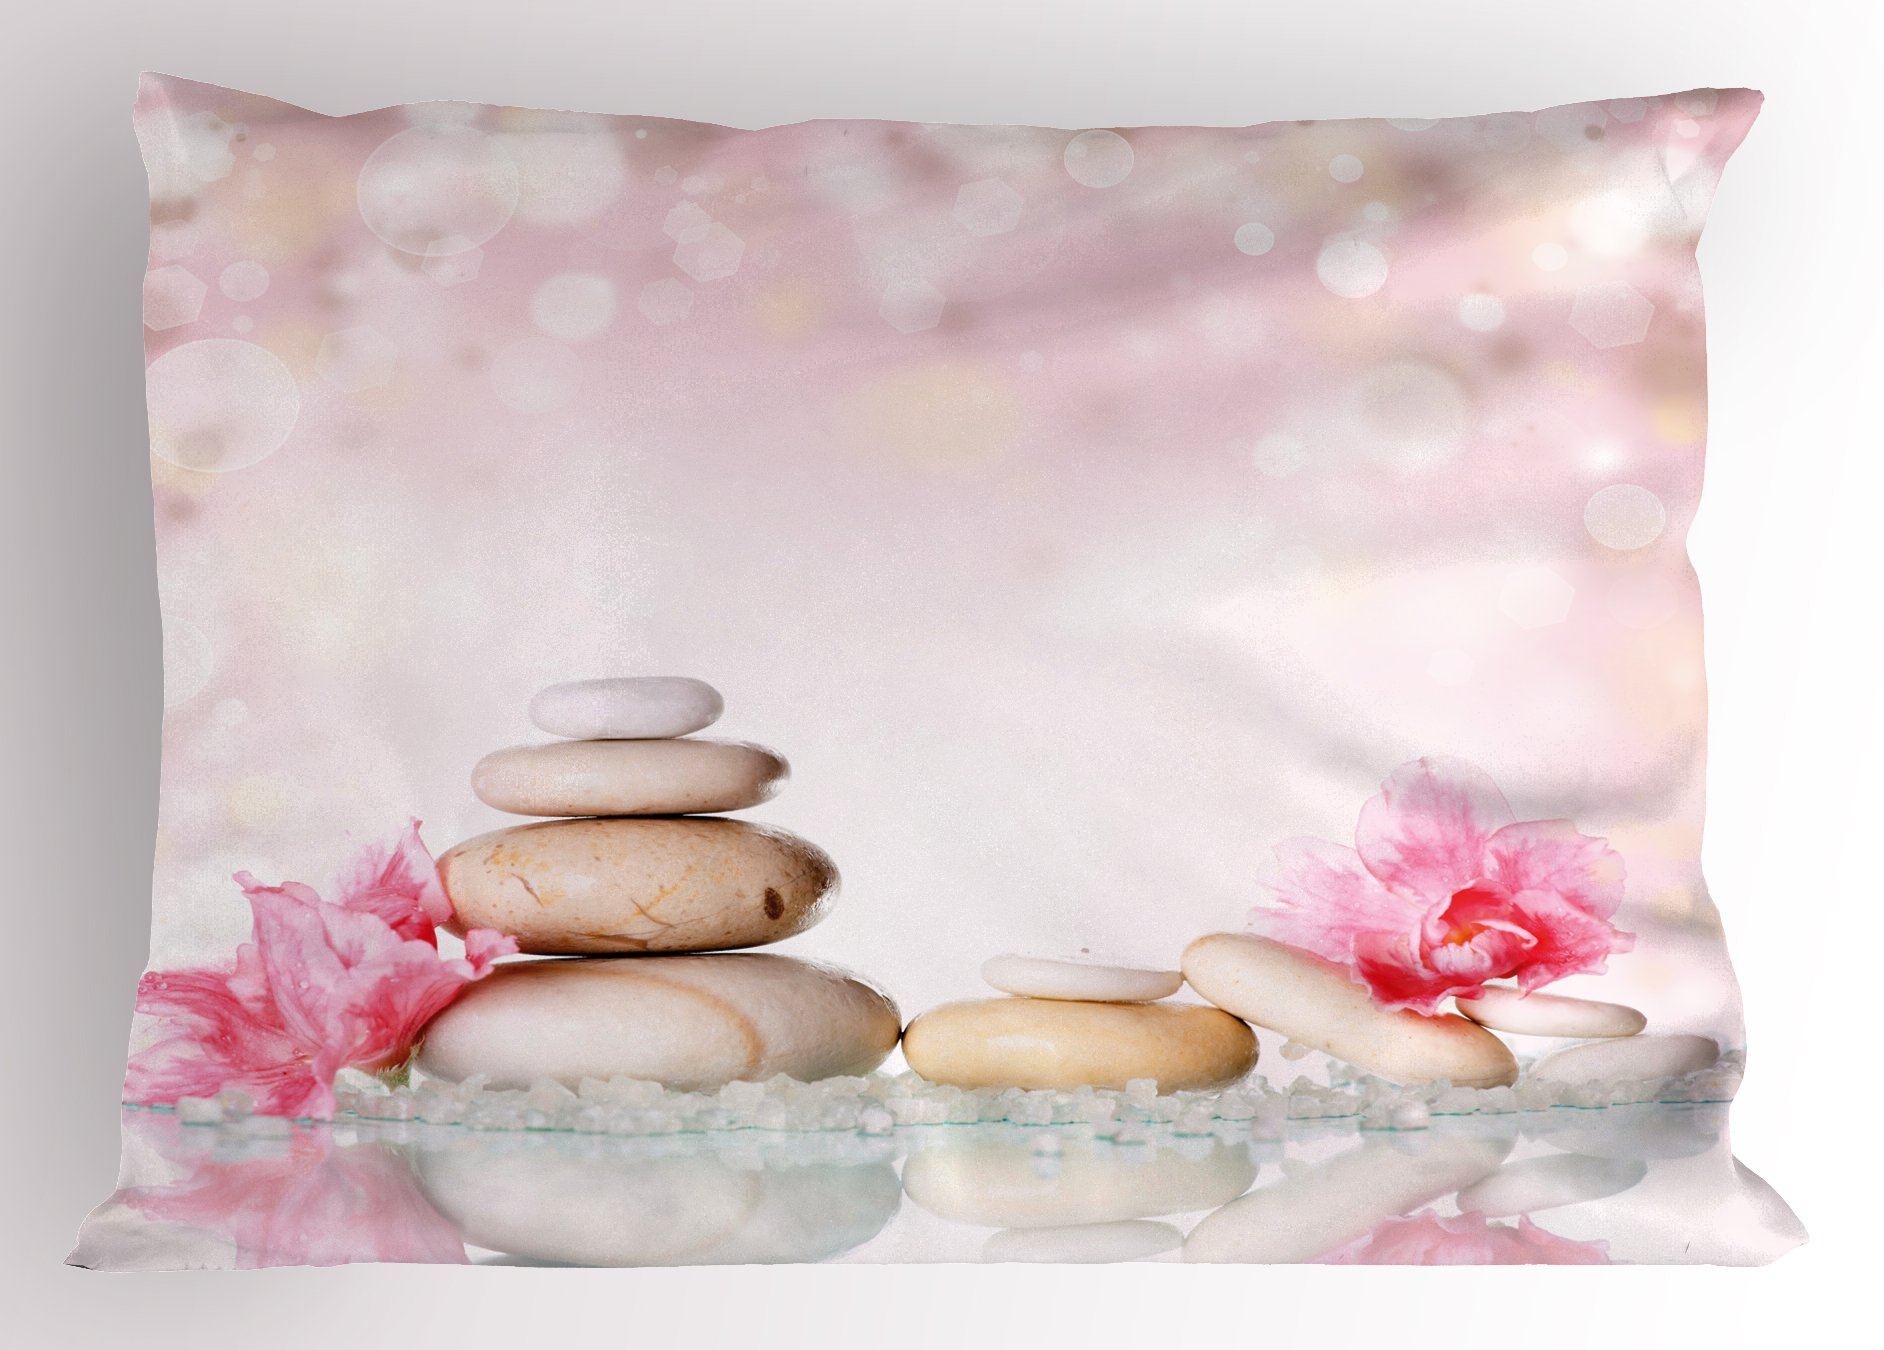 Ambesonne Spa Pillow Sham, Bohemian Zen Stones and Soft Petals Therapy Tradition Chakra Yoga Asian Picture, Decorative Standard Size Printed Pillowcase, 26 X 20 inches, Light Pink Peach